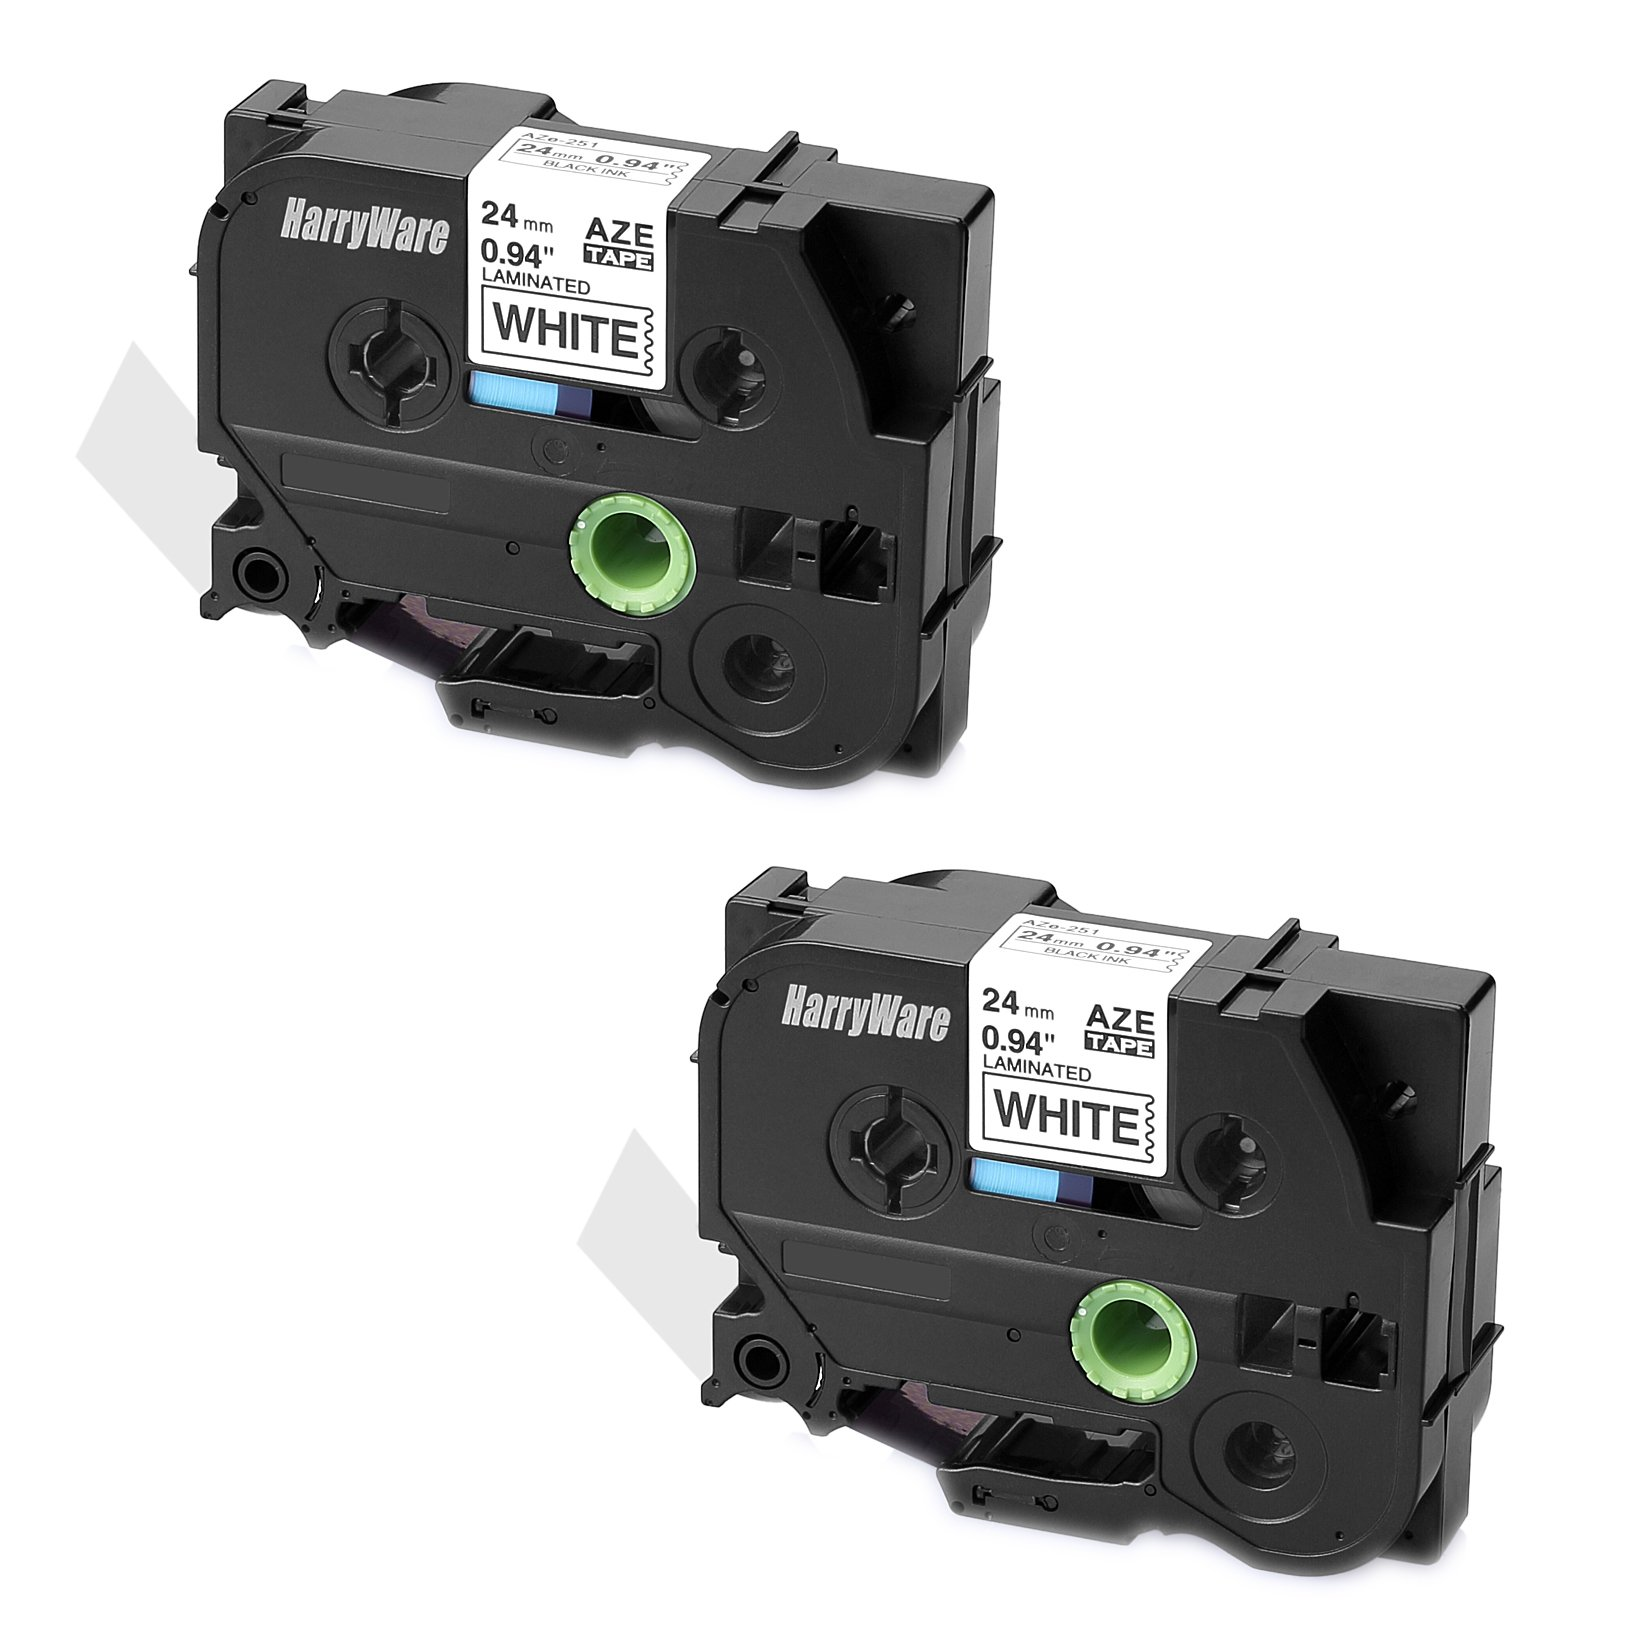 SIENOC 2x Compatible For Brother TZ 251 TZe 251 P-Touch 26.2ft Black on White Label Tape 24mmx8m